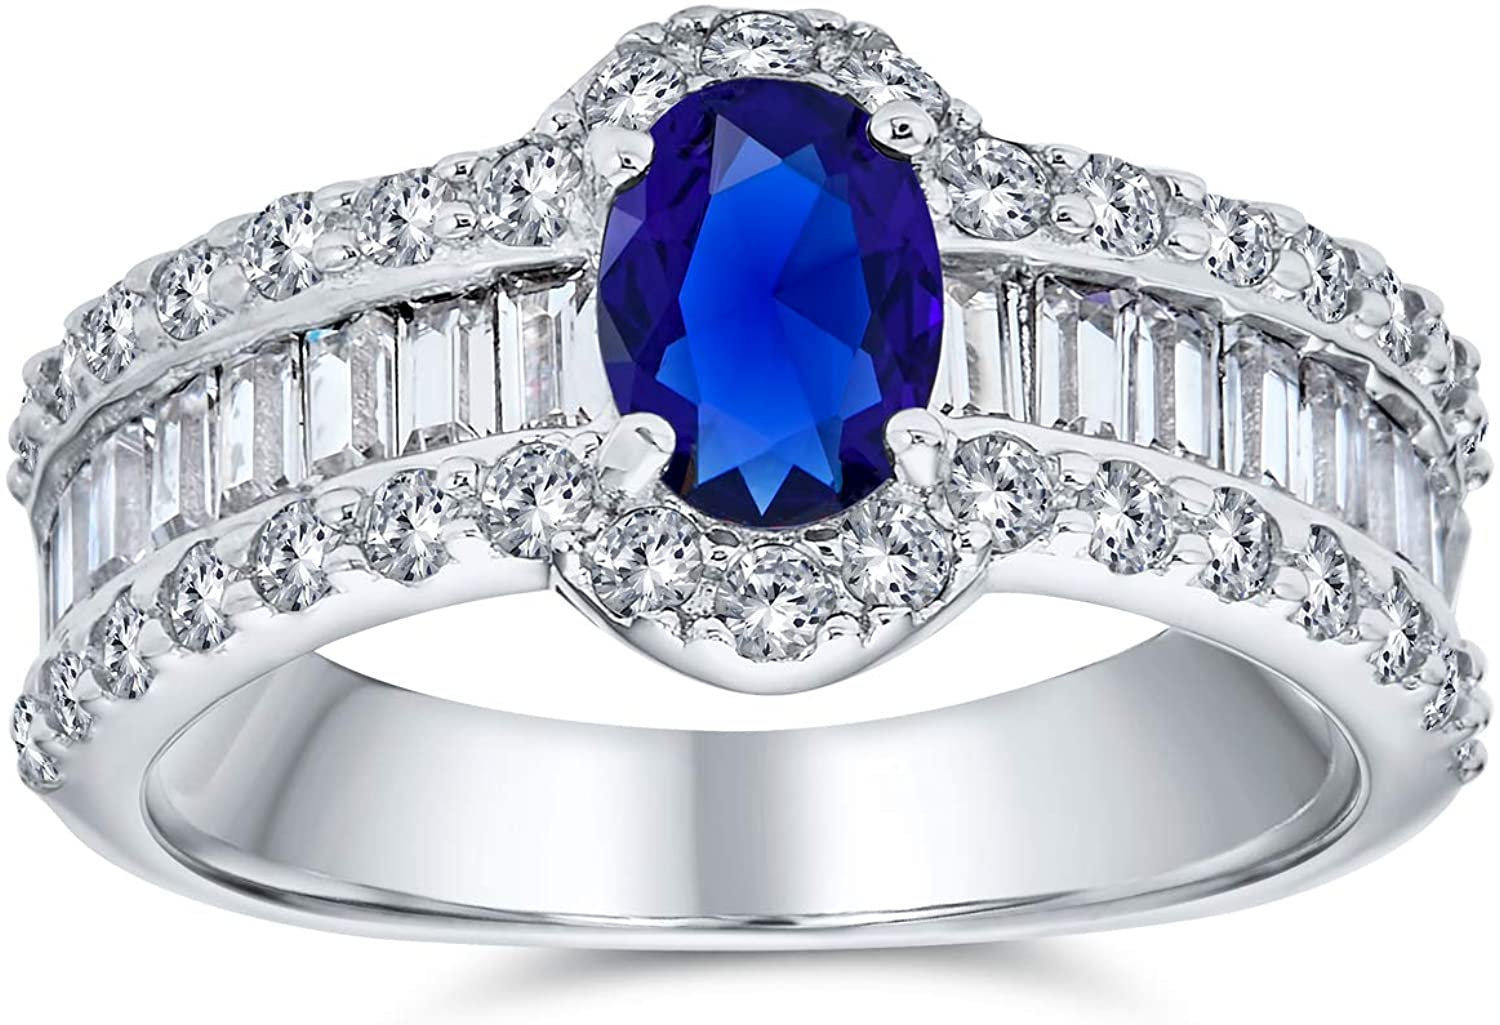 Art Deco Style Oval Solitaire Halo Blue Simulated Sapphire Engagement Ring For Women 925 Sterling Silver